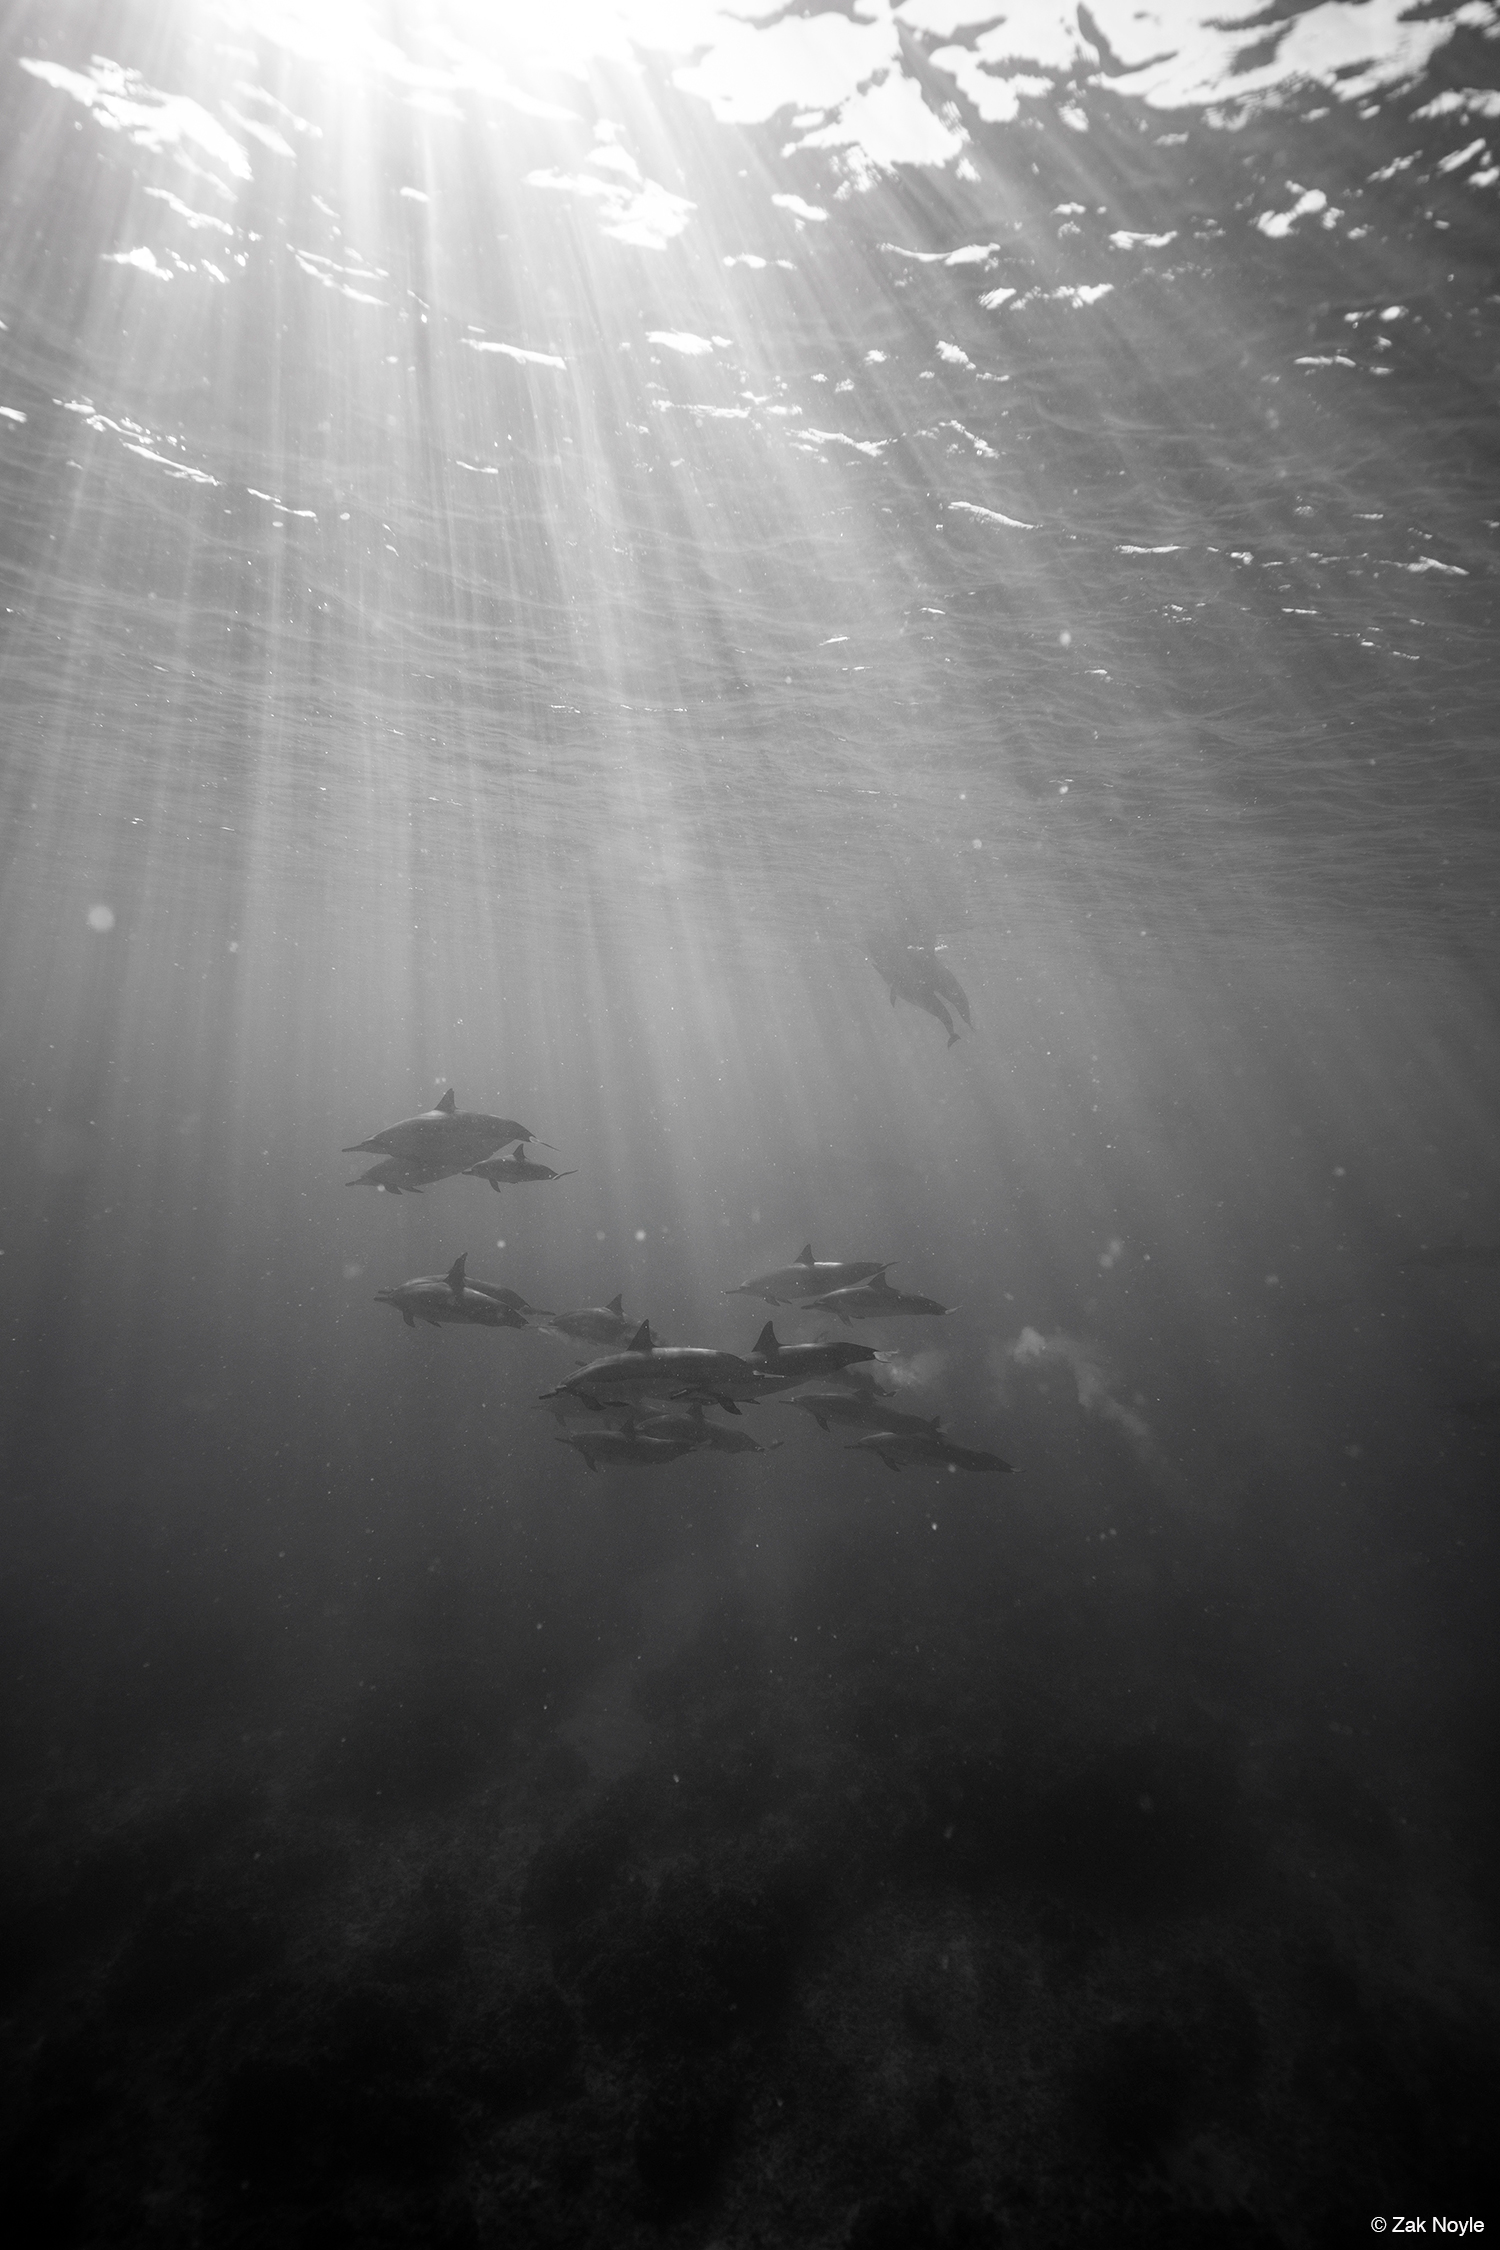 Photo of dolphins by Zak Noyle 7